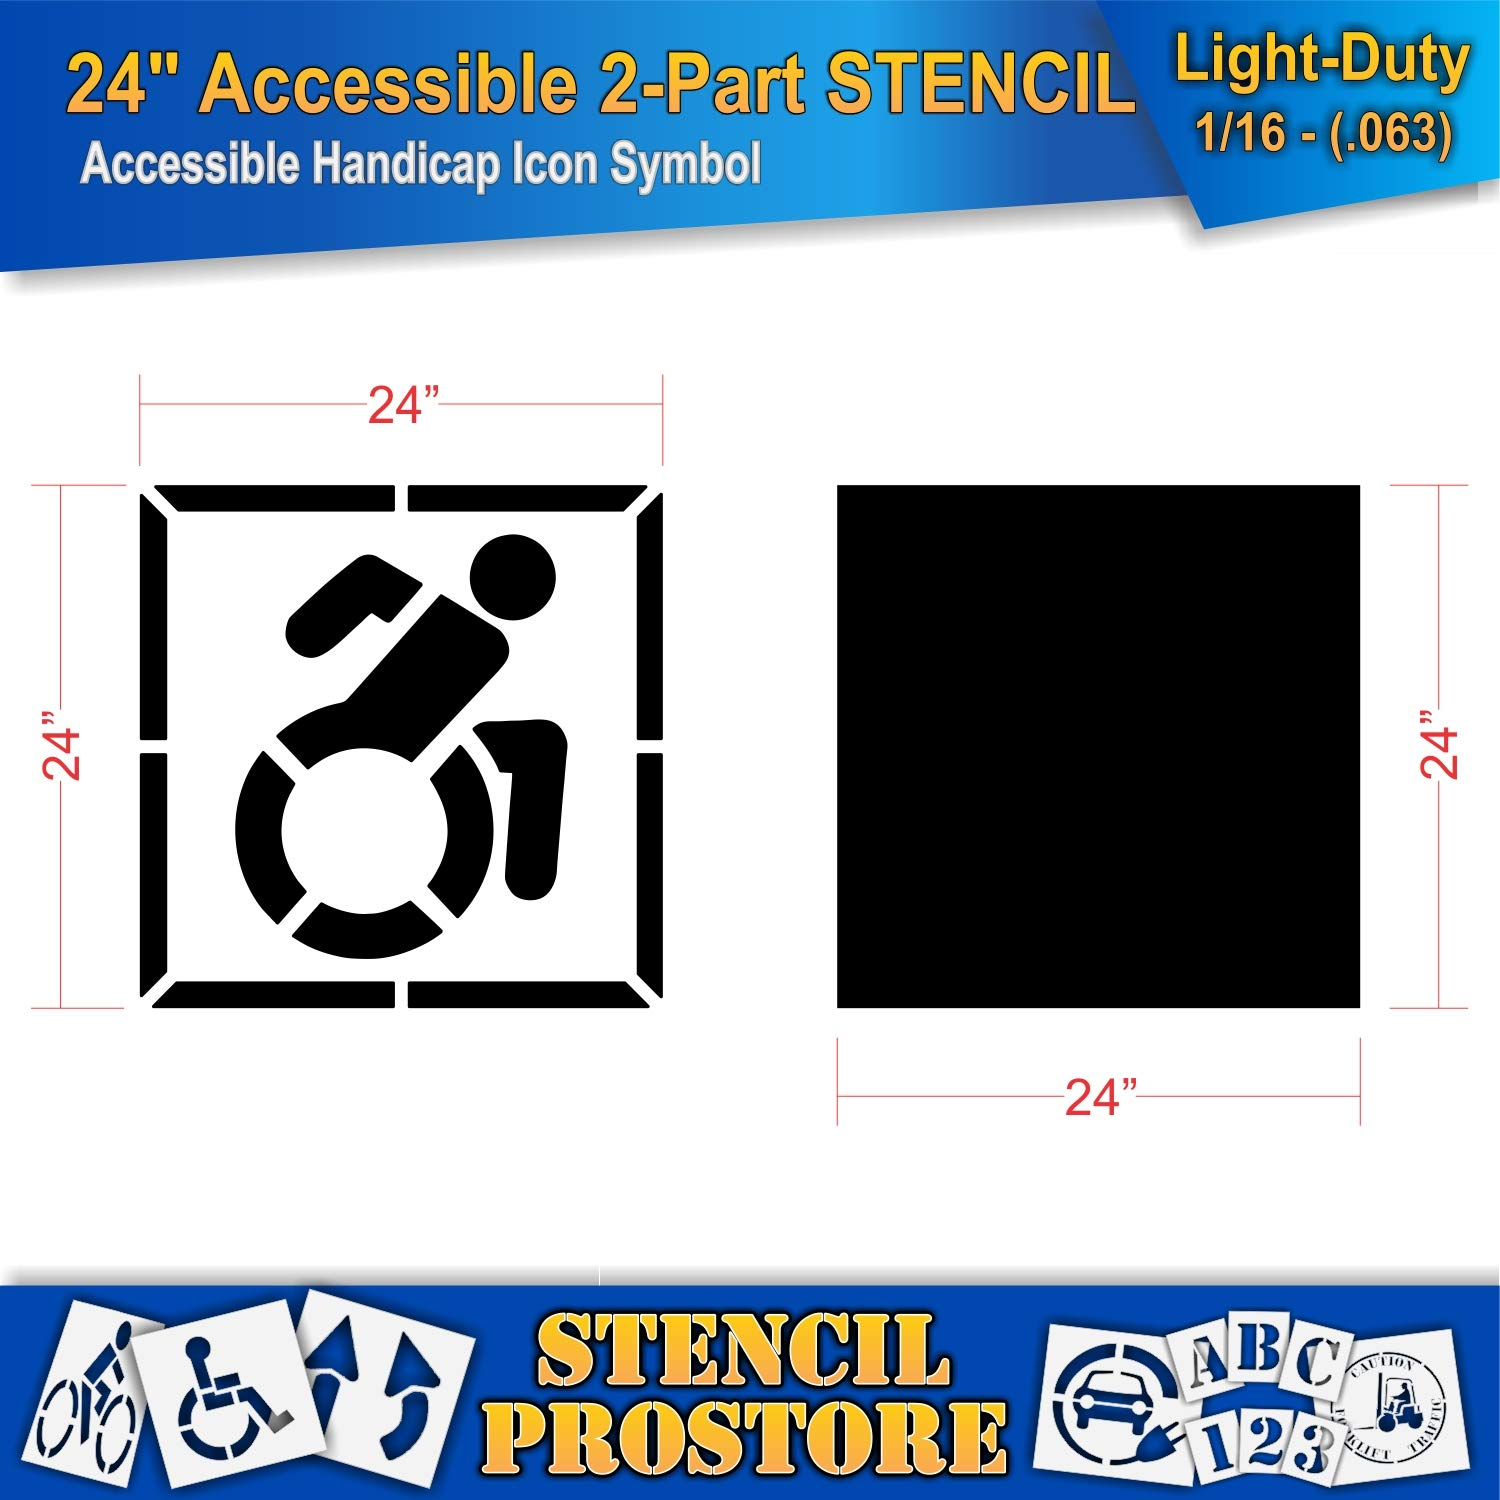 Pavement Stencils - 42 in - Accessible Icon Symbol Stencil with Background (2-Piece) - 42'' x 42'' x 1/16'' (63 mil) - Light-Duty by Stencil ProStore (Image #2)